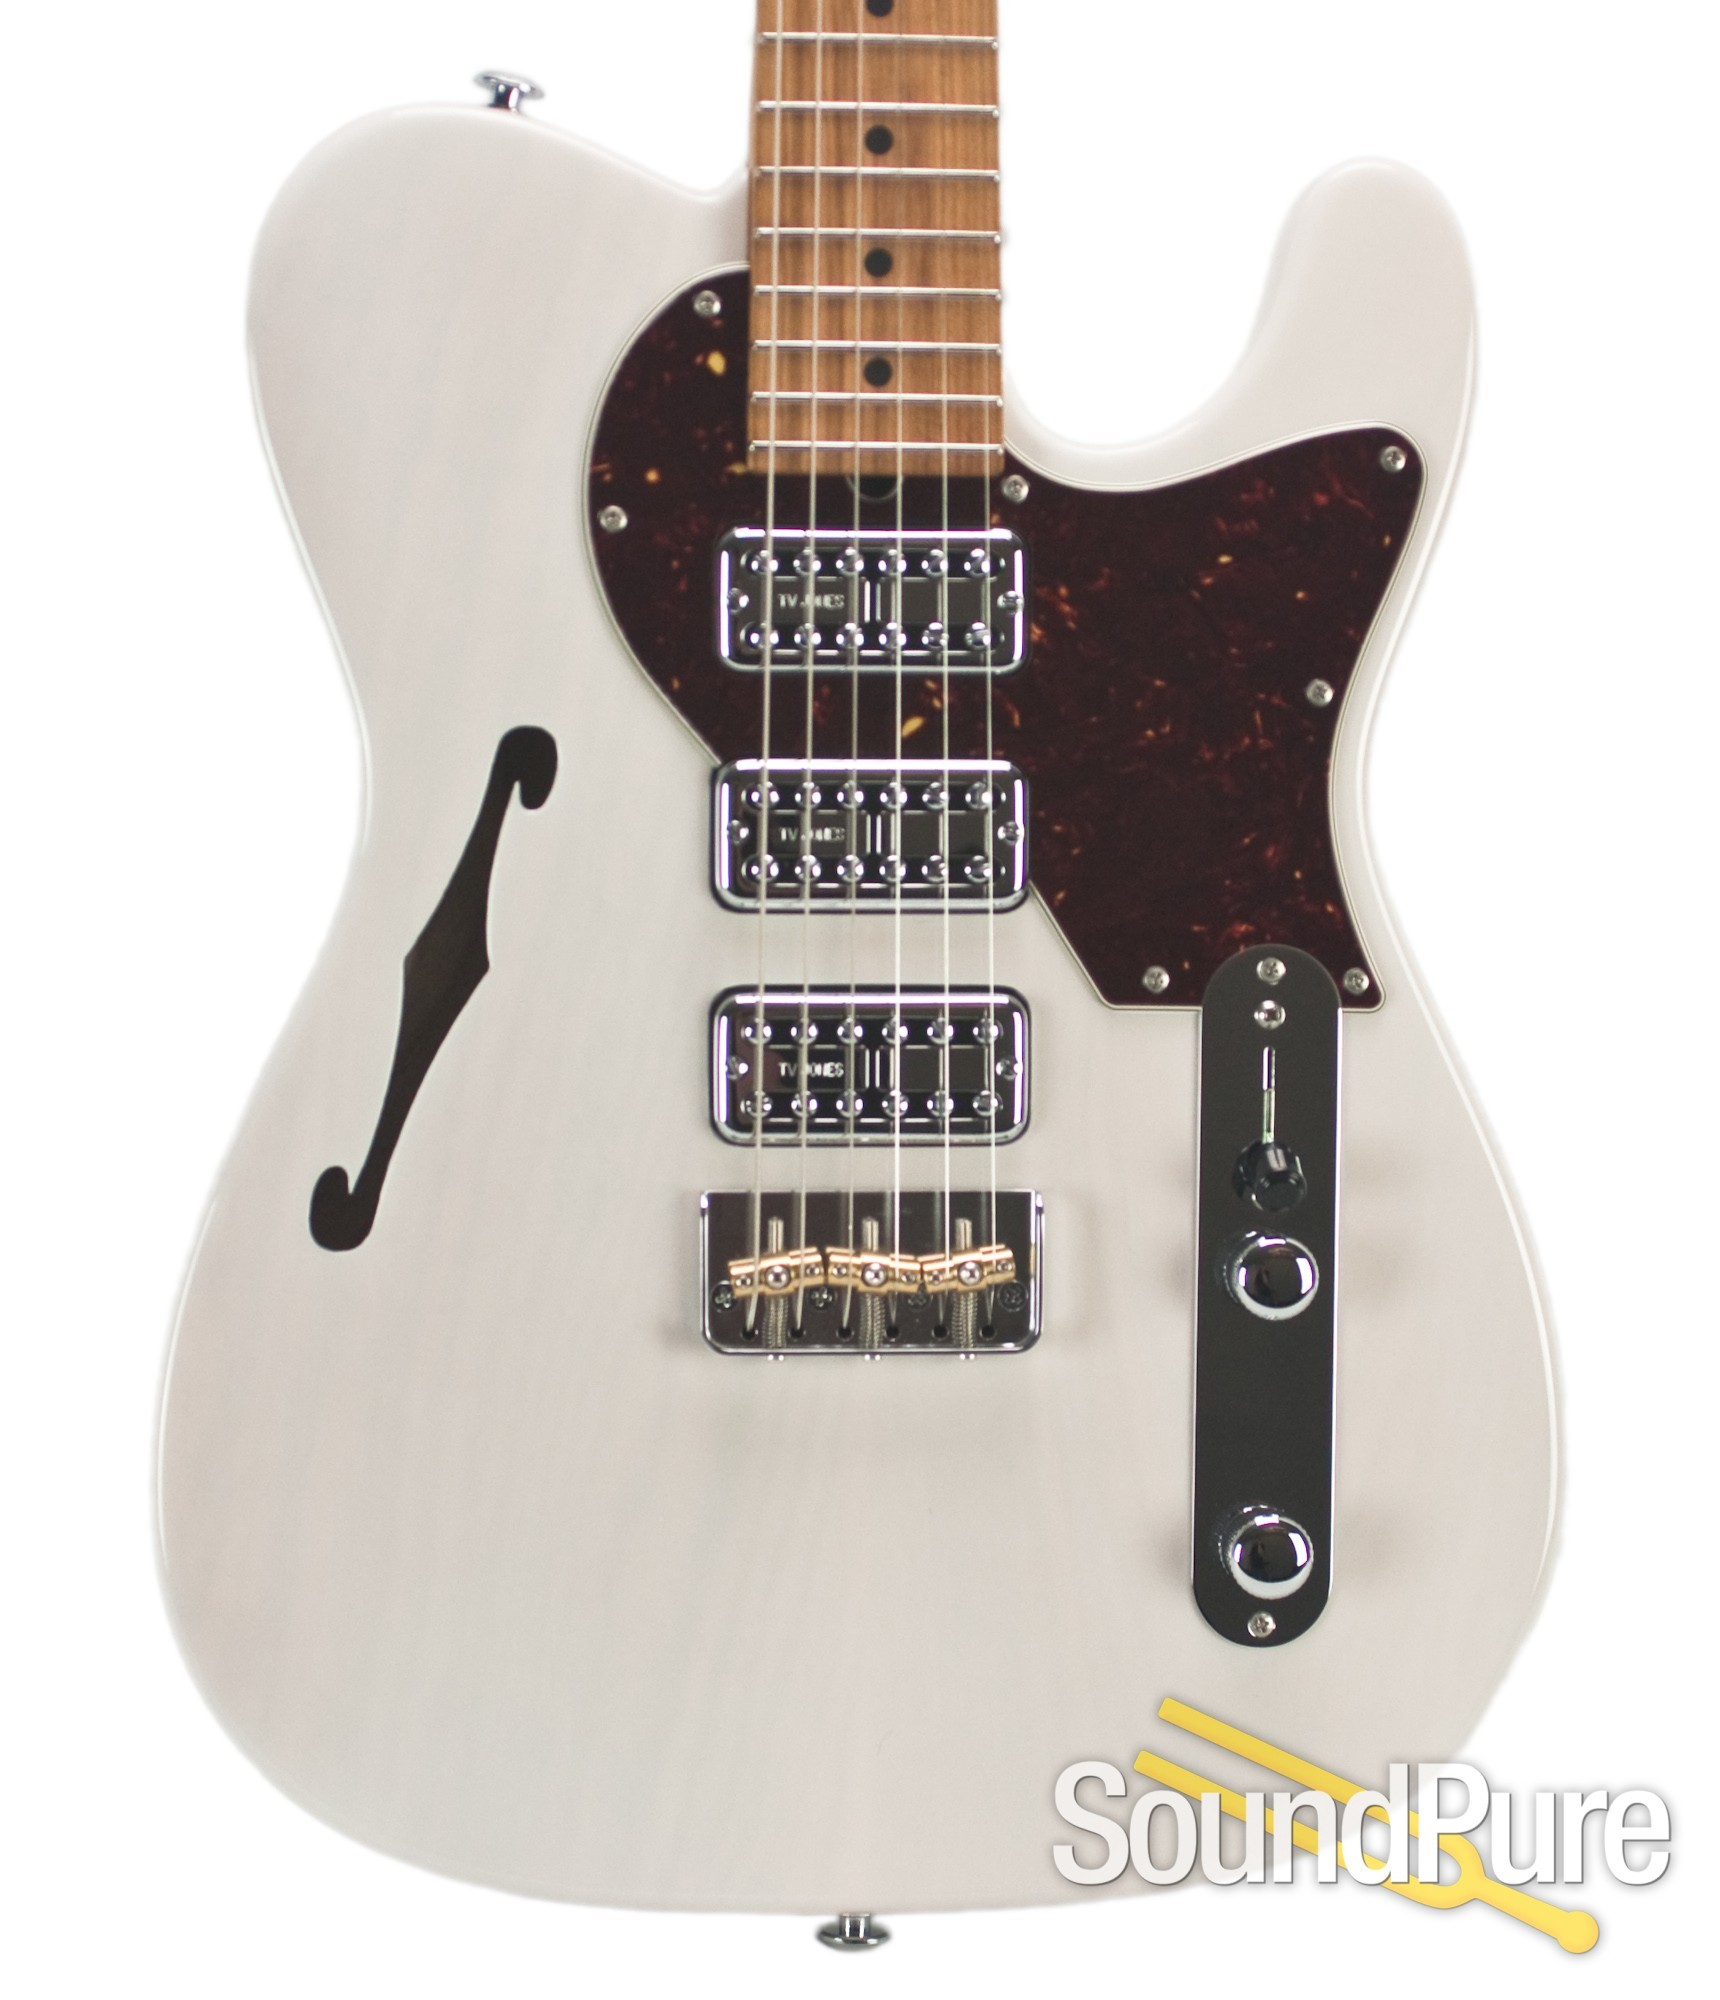 A trans white Classic T with TV Jones pickups and a roasted maple neck